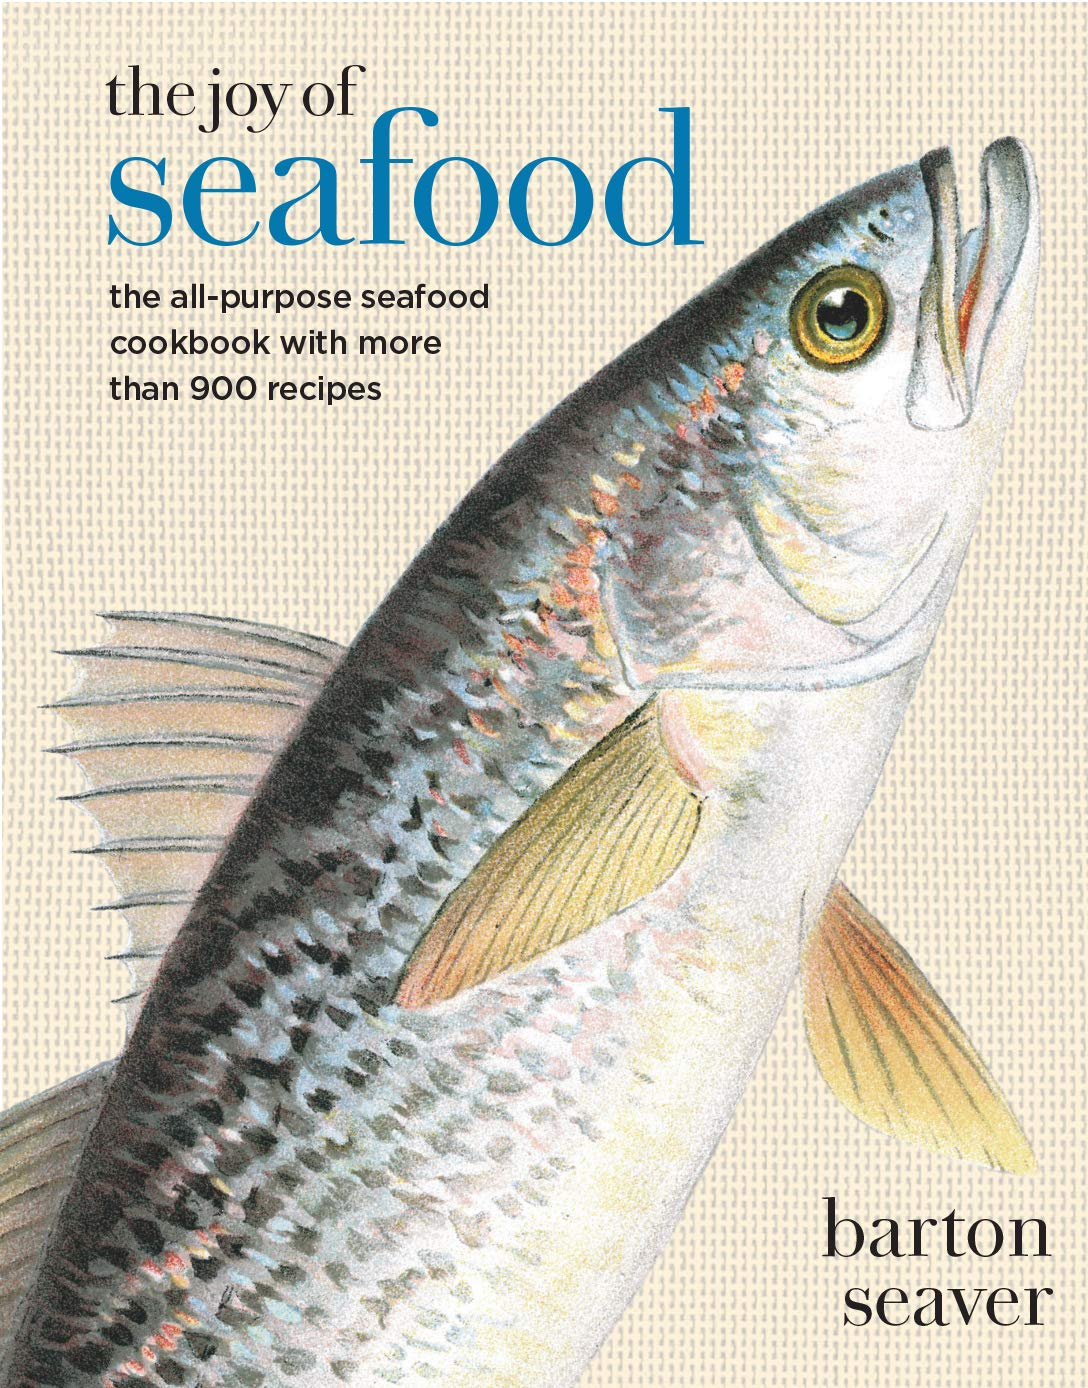 Joy of Seafood by Barton Seaver